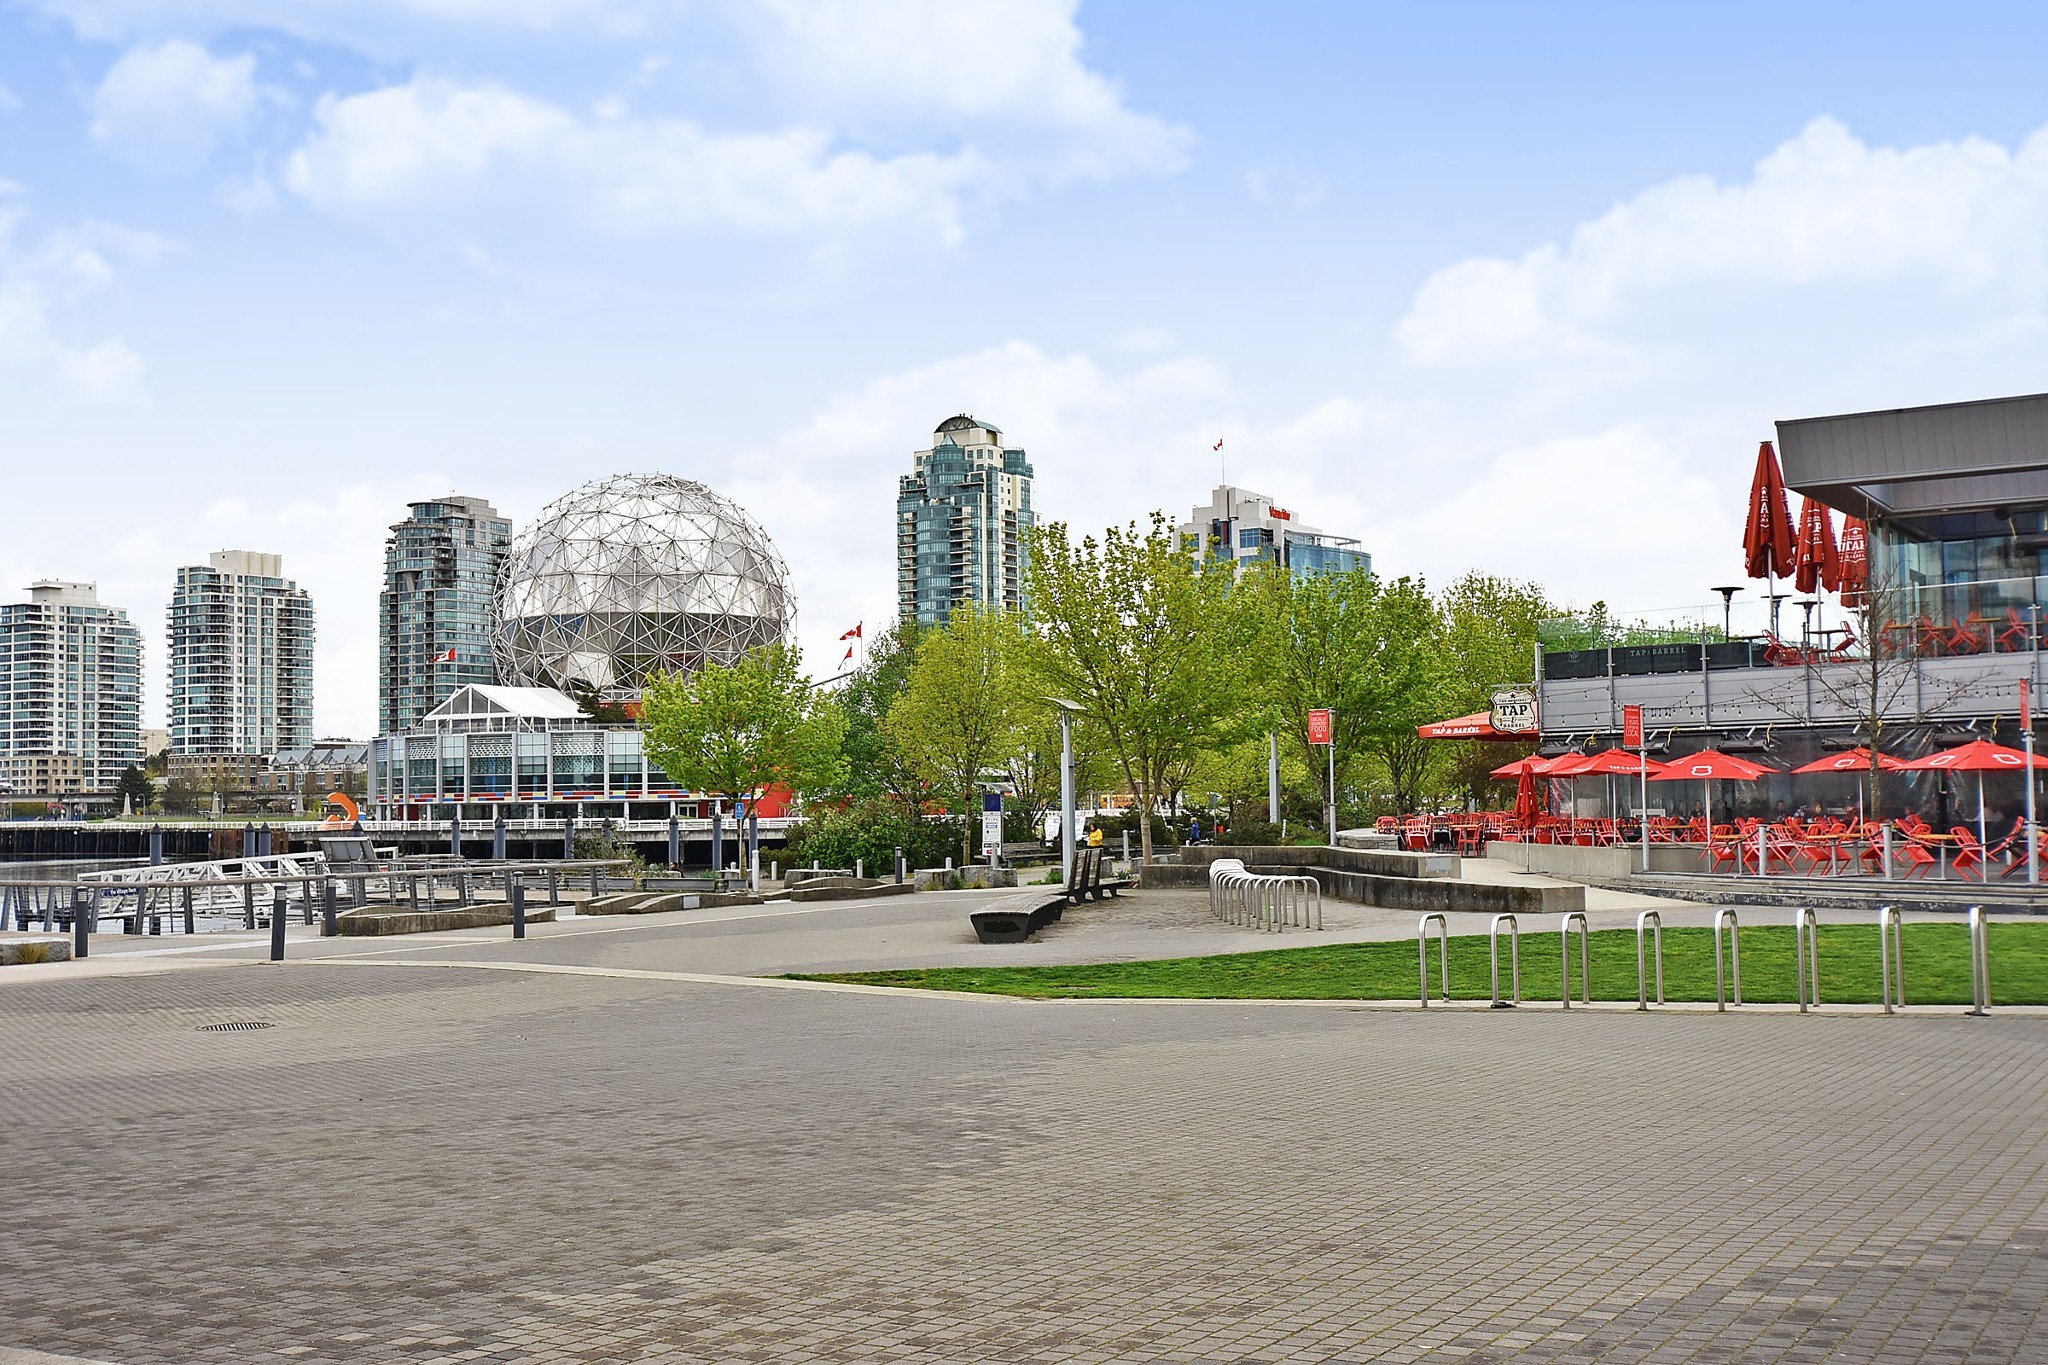 Photo 21: Photos: 306 138 W 1ST AVENUE in Vancouver: False Creek Condo for sale (Vancouver West)  : MLS®# R2360592